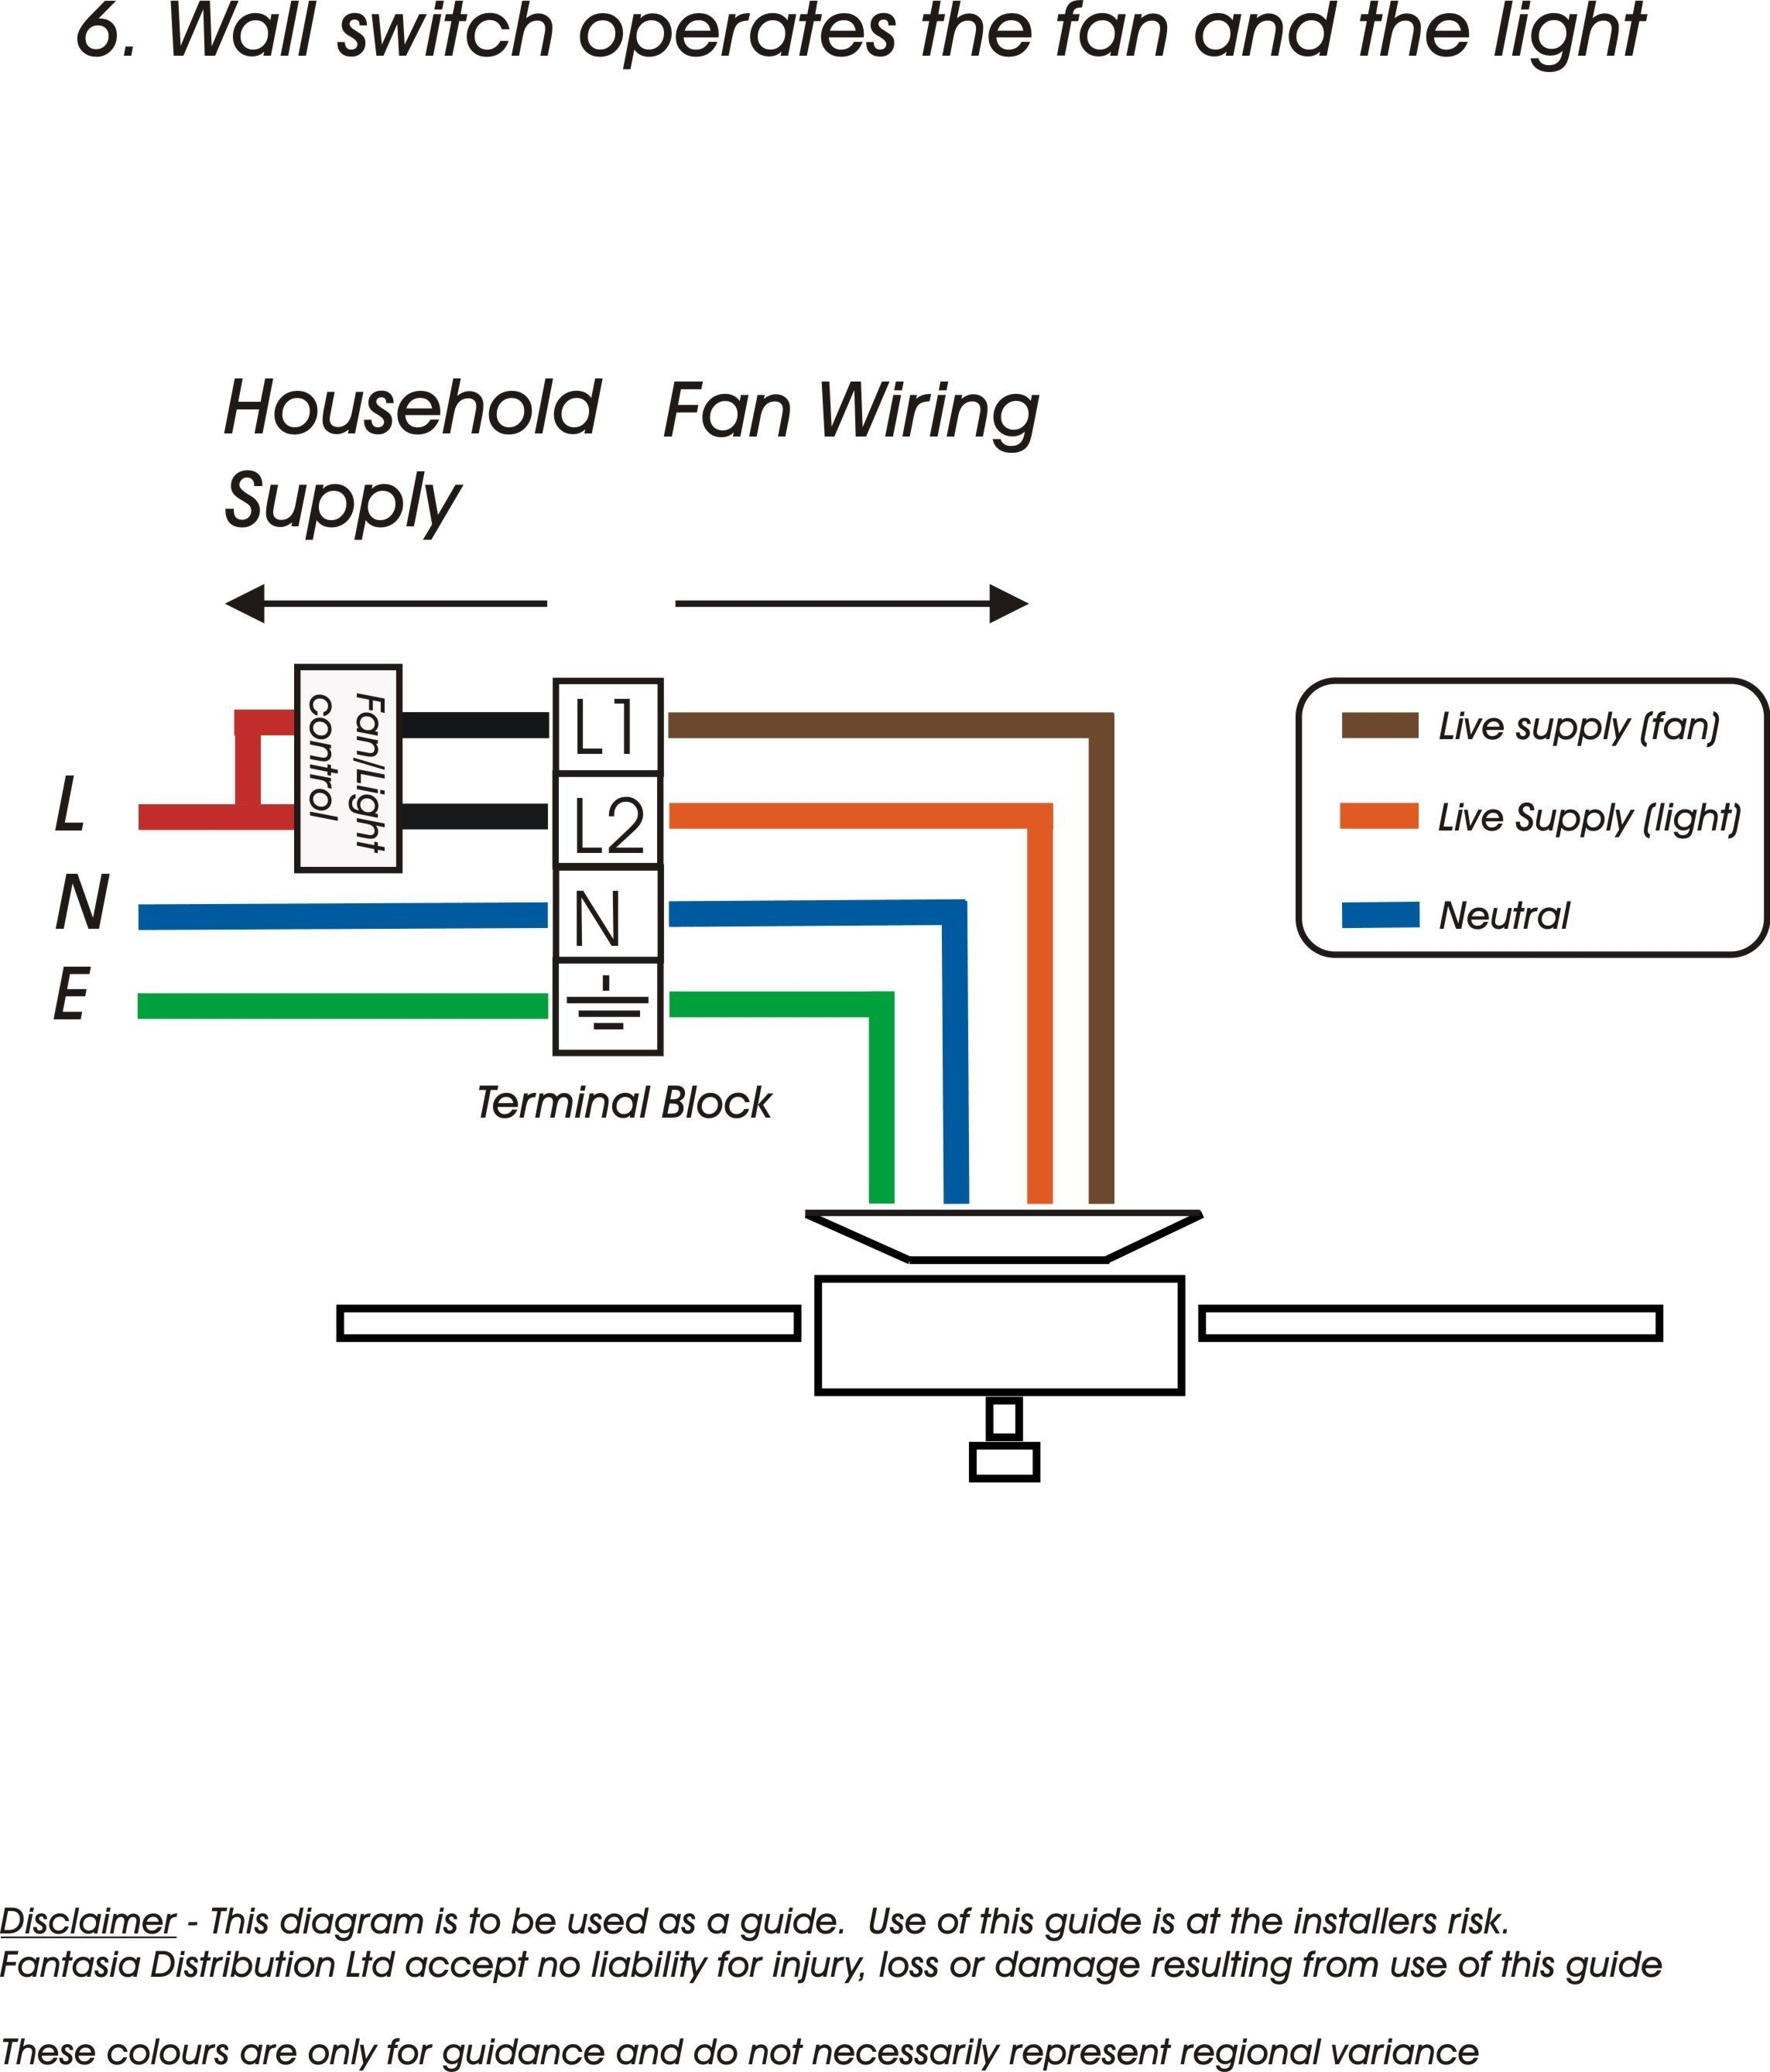 hunter fan switch wiring diagram Download-Wiring Diagram for Ceiling Fan Switch New Hunter Fan Switch Wiring Diagram 4-i